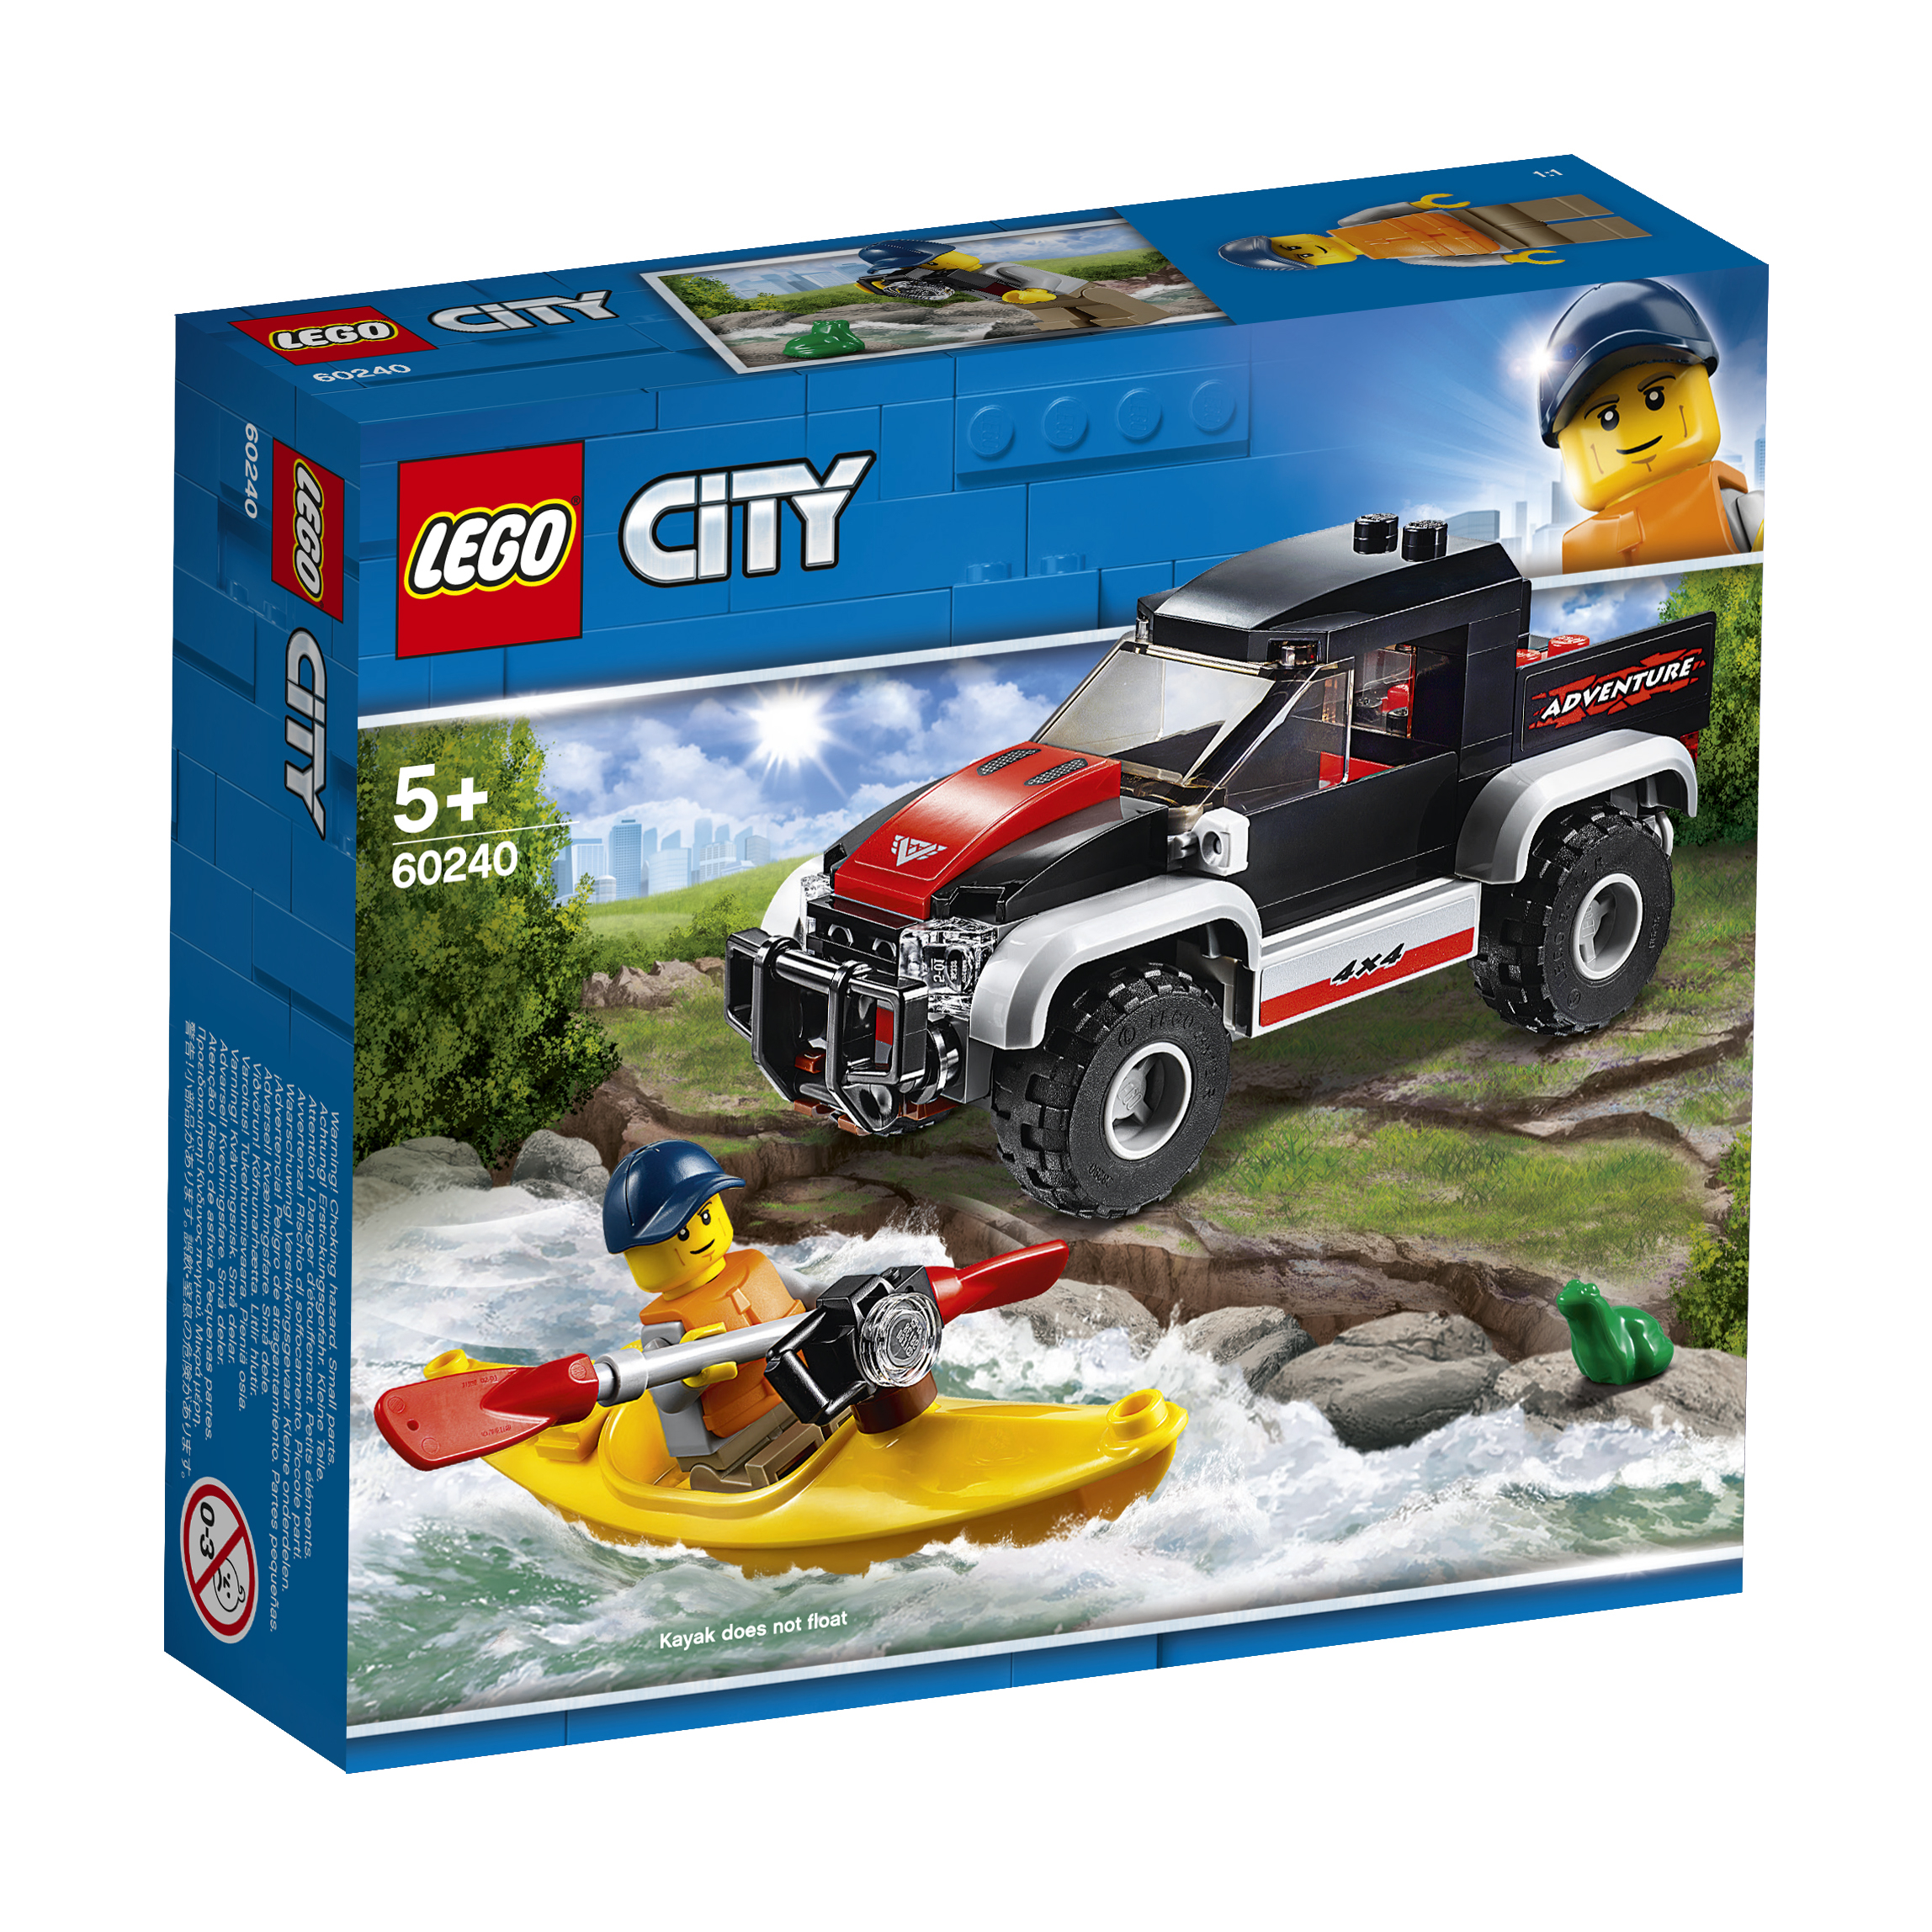 Купить LEGO, City Great Vehicles 60240 Сплав на байдарке, Венгрия